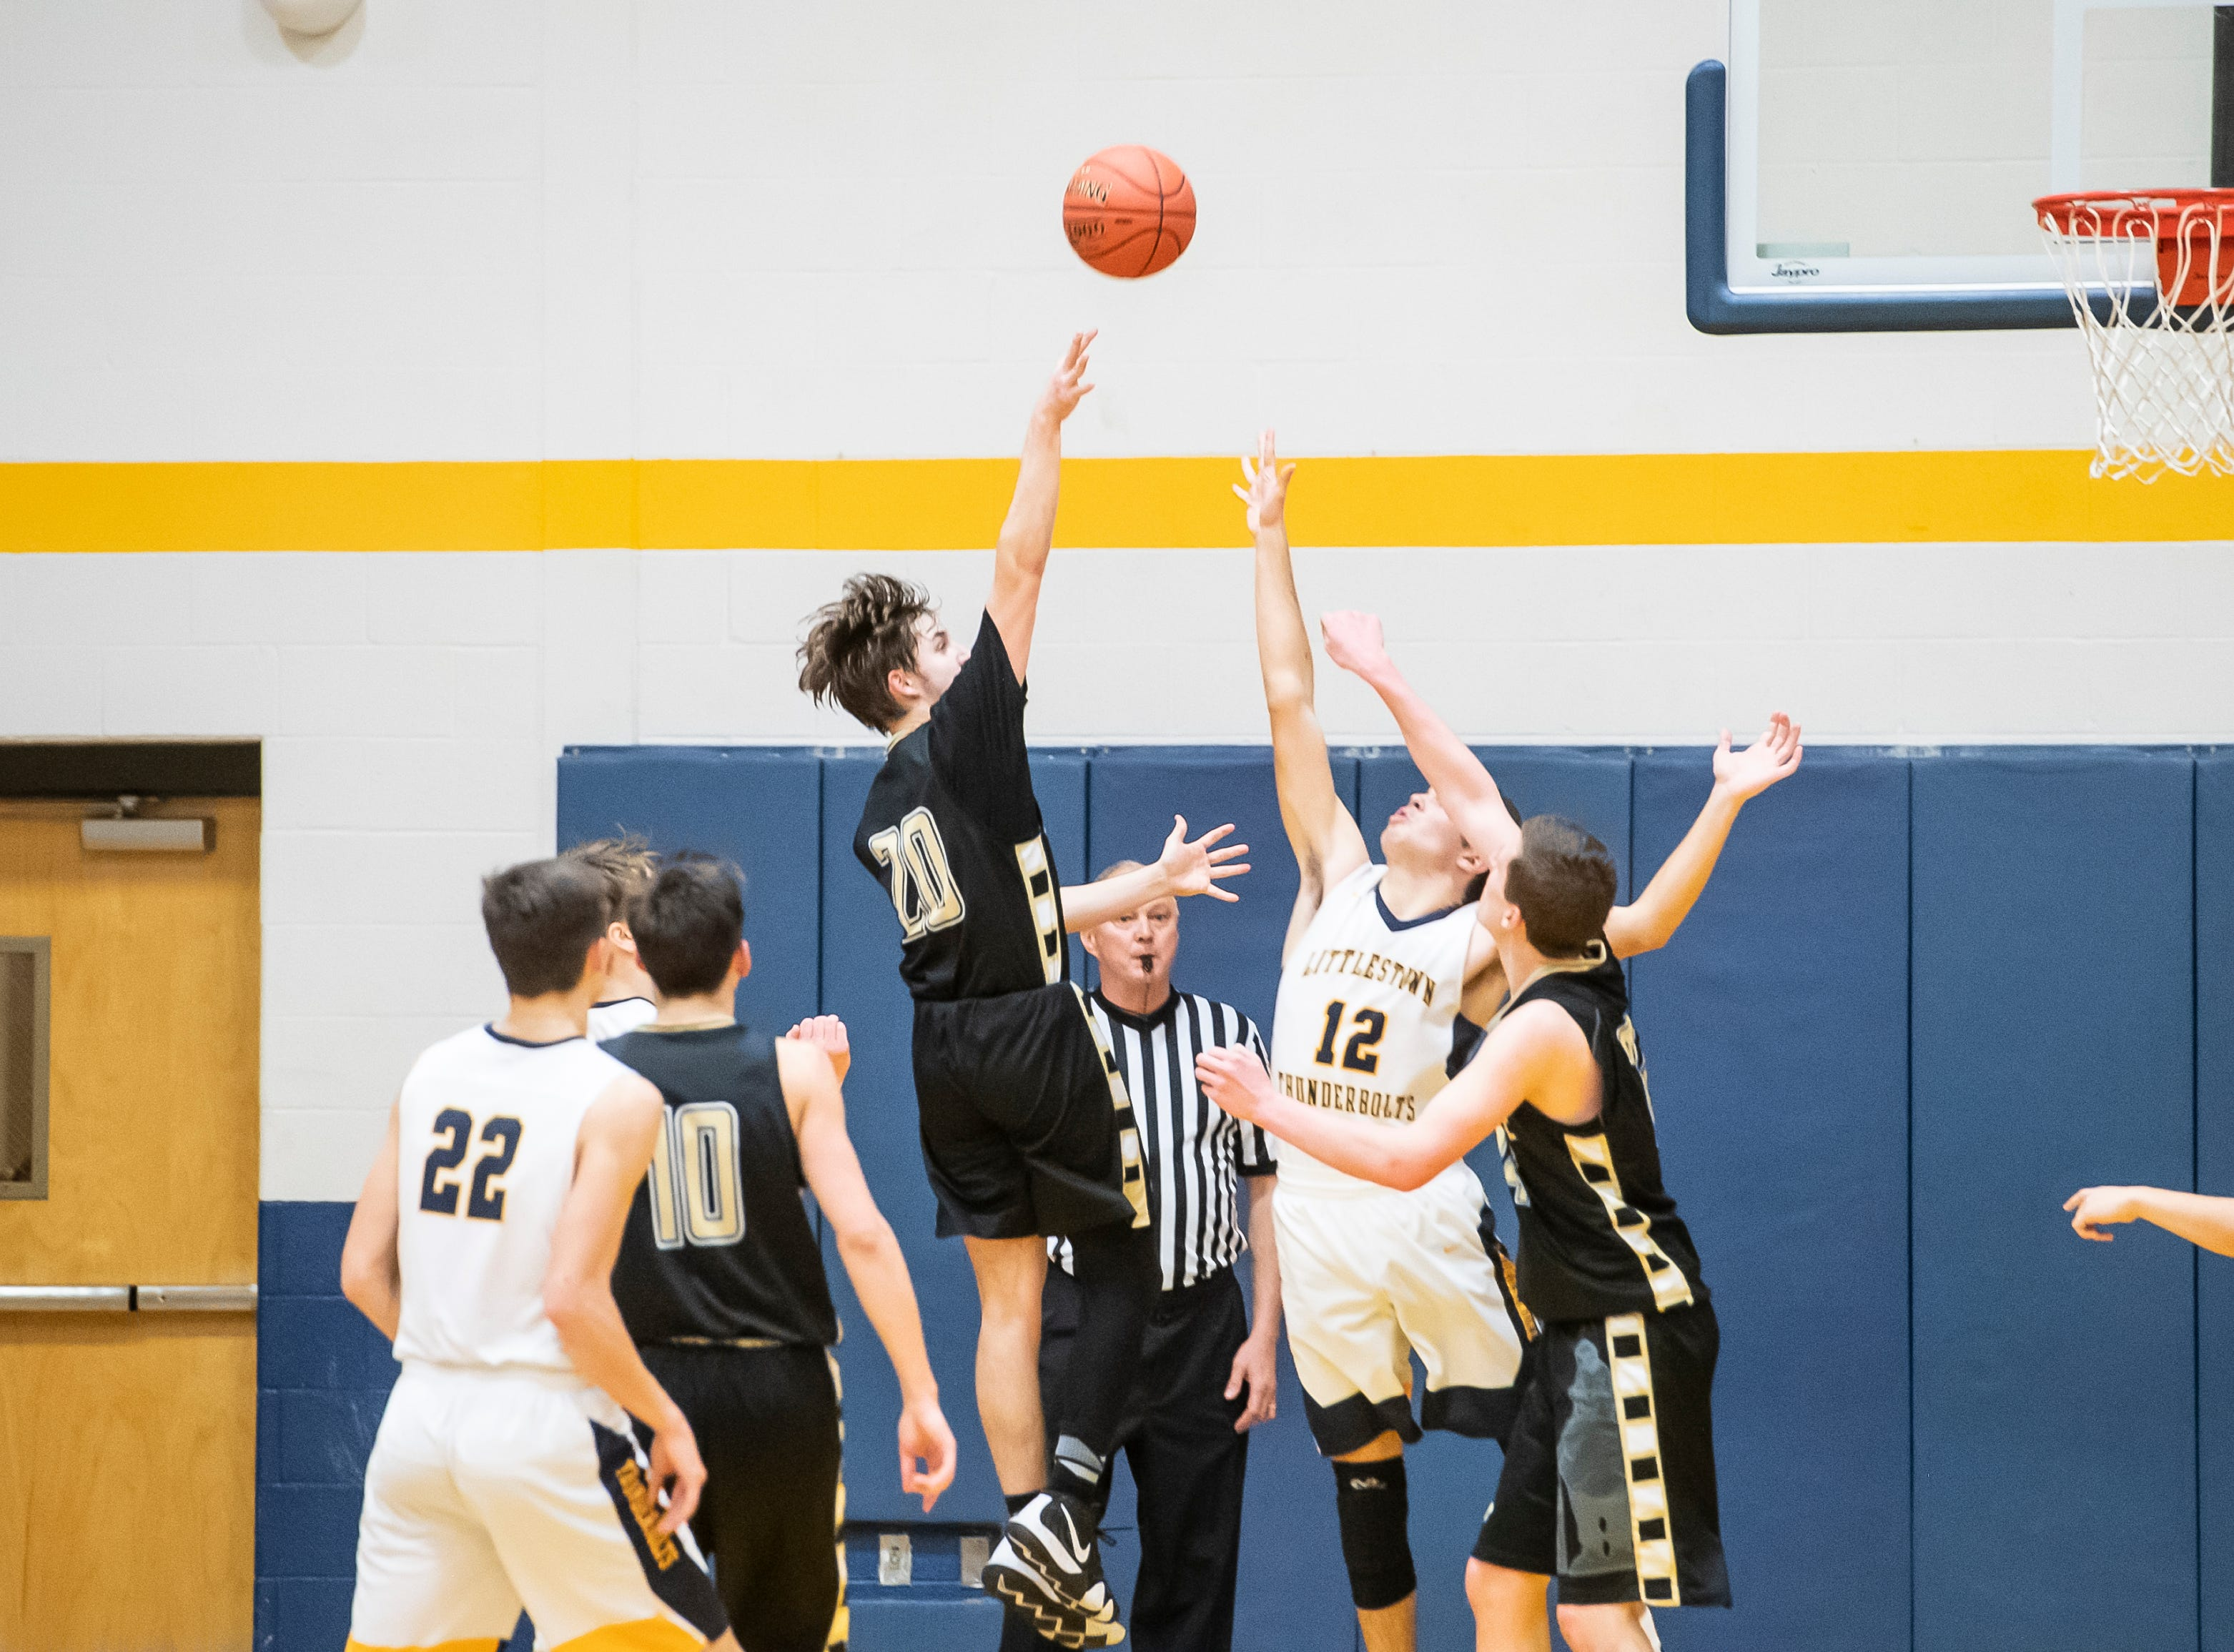 Biglerville's Noah Weaver scores on a jump shot during play against Littlestown Tuesday, February 5, 2019. The Canners fell 54-46.